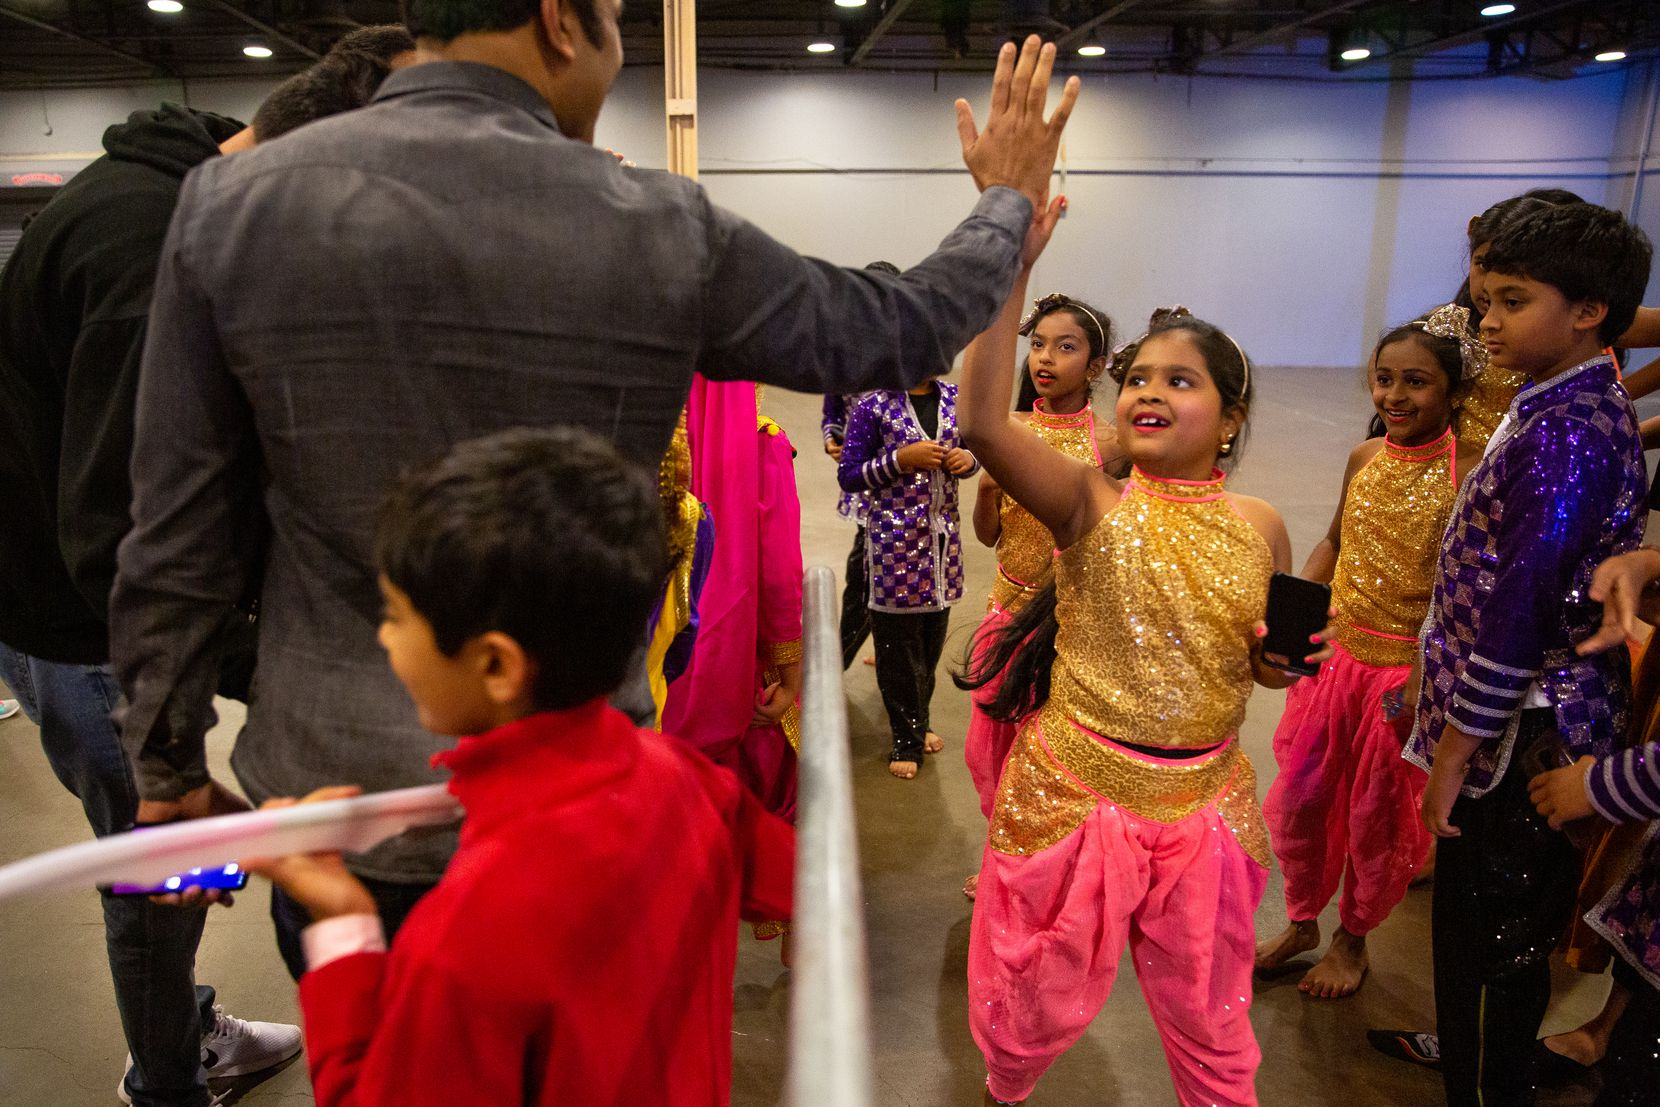 Balayashmitha Allada gets a high-five Saturday after performing with her troupe from Nrithya Dance Academy at Fair Park in Dallas.